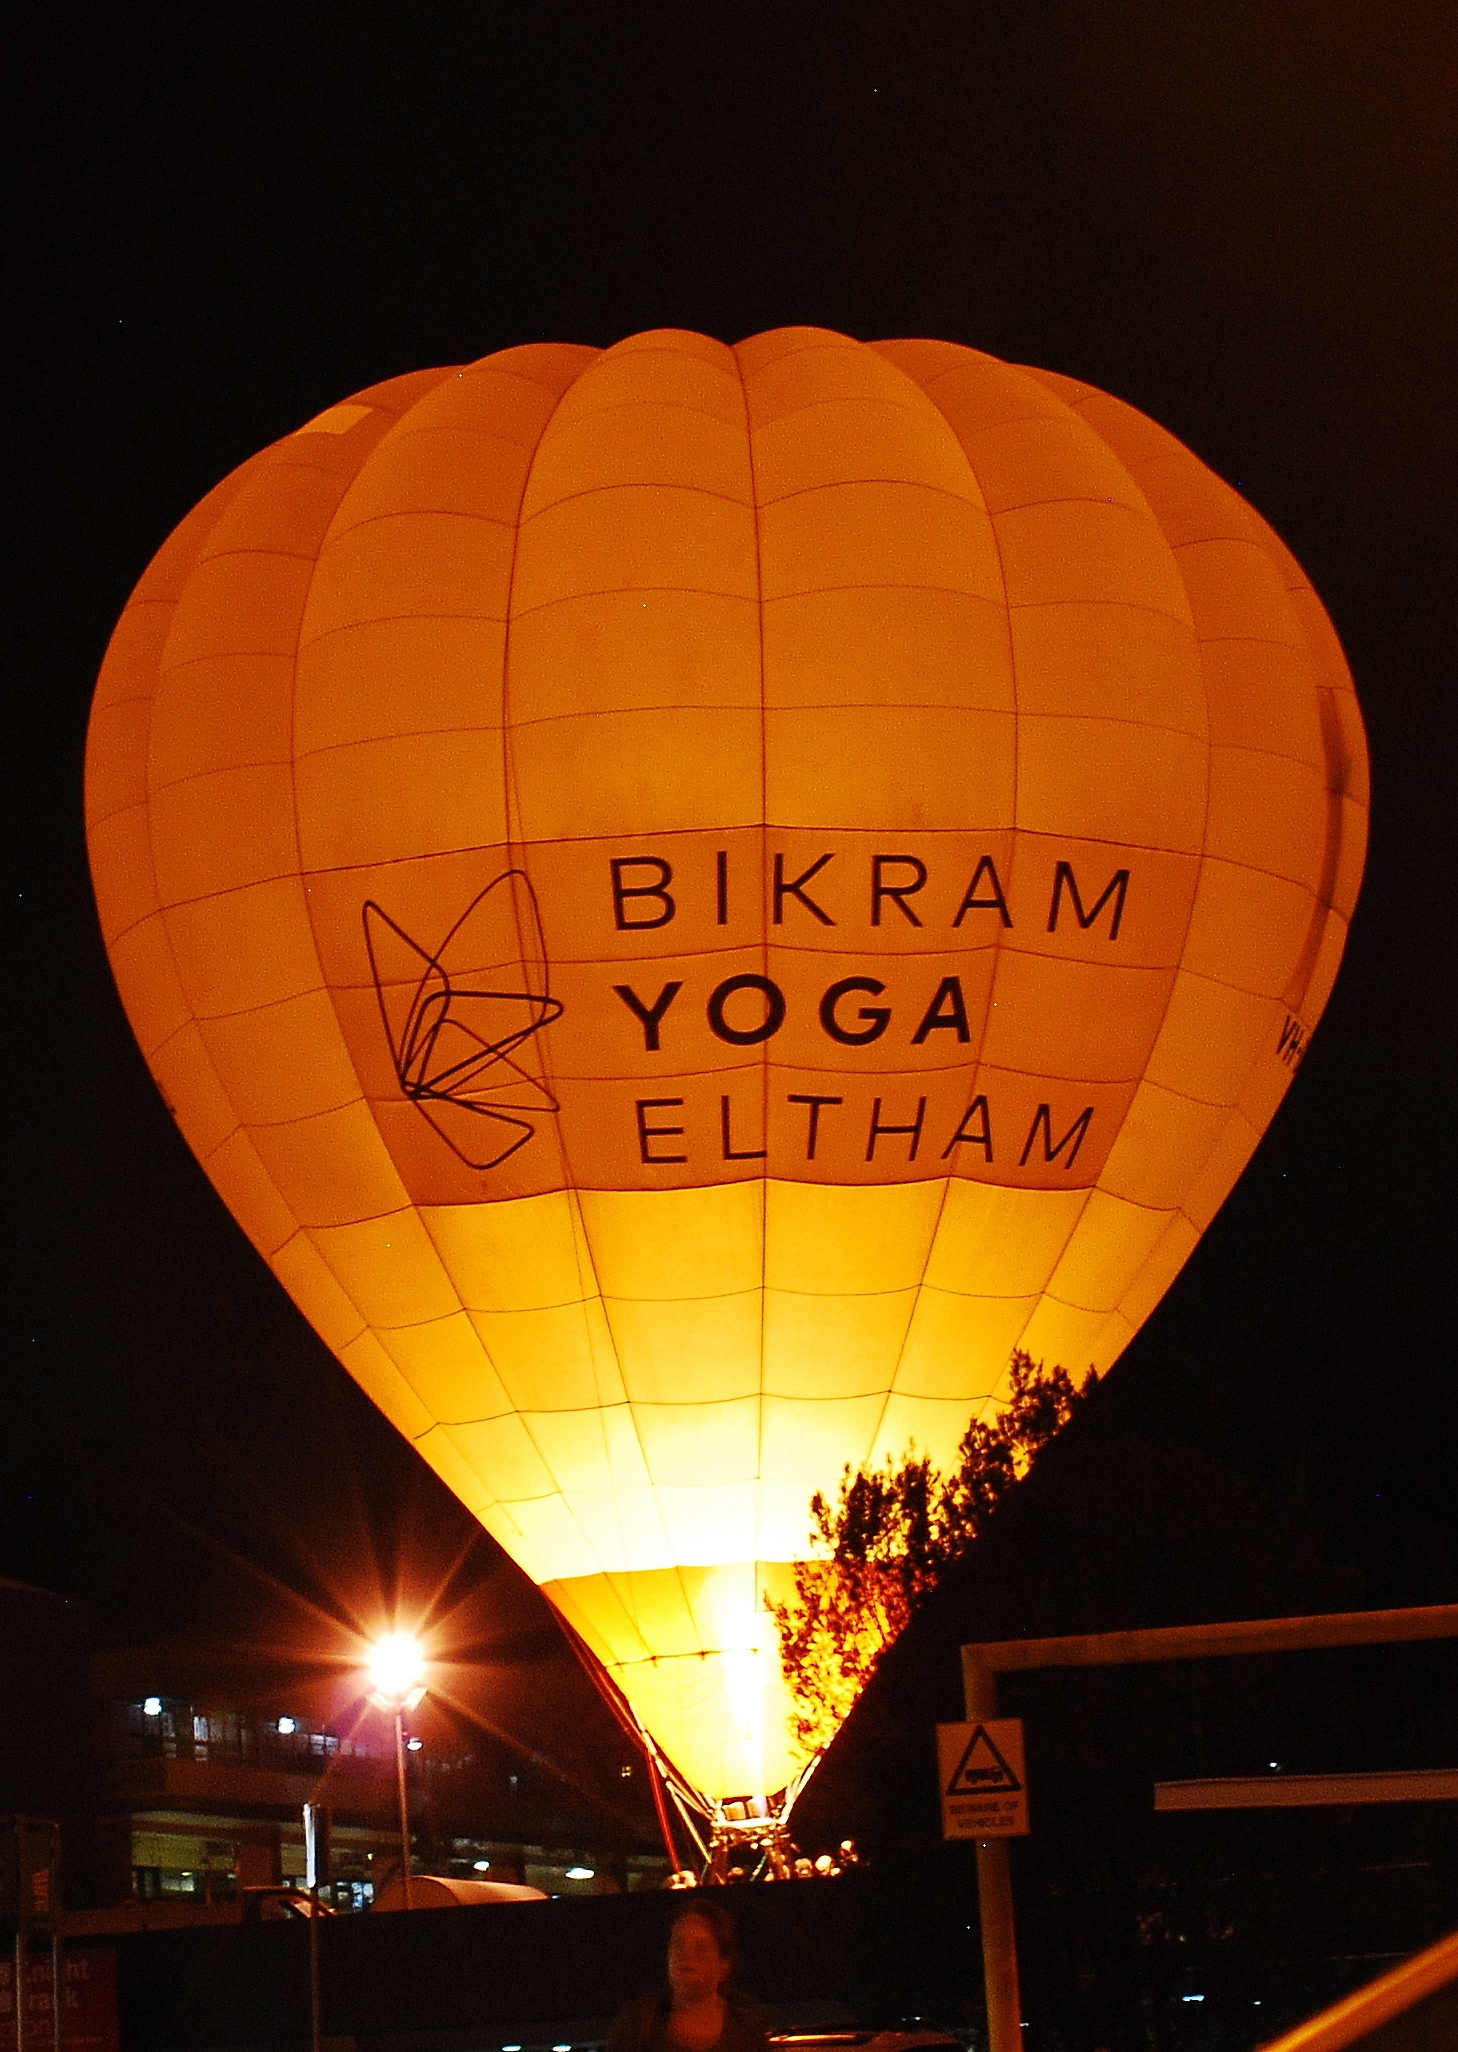 Our advertising hot air balloon for Bikram Yoga Eltham.